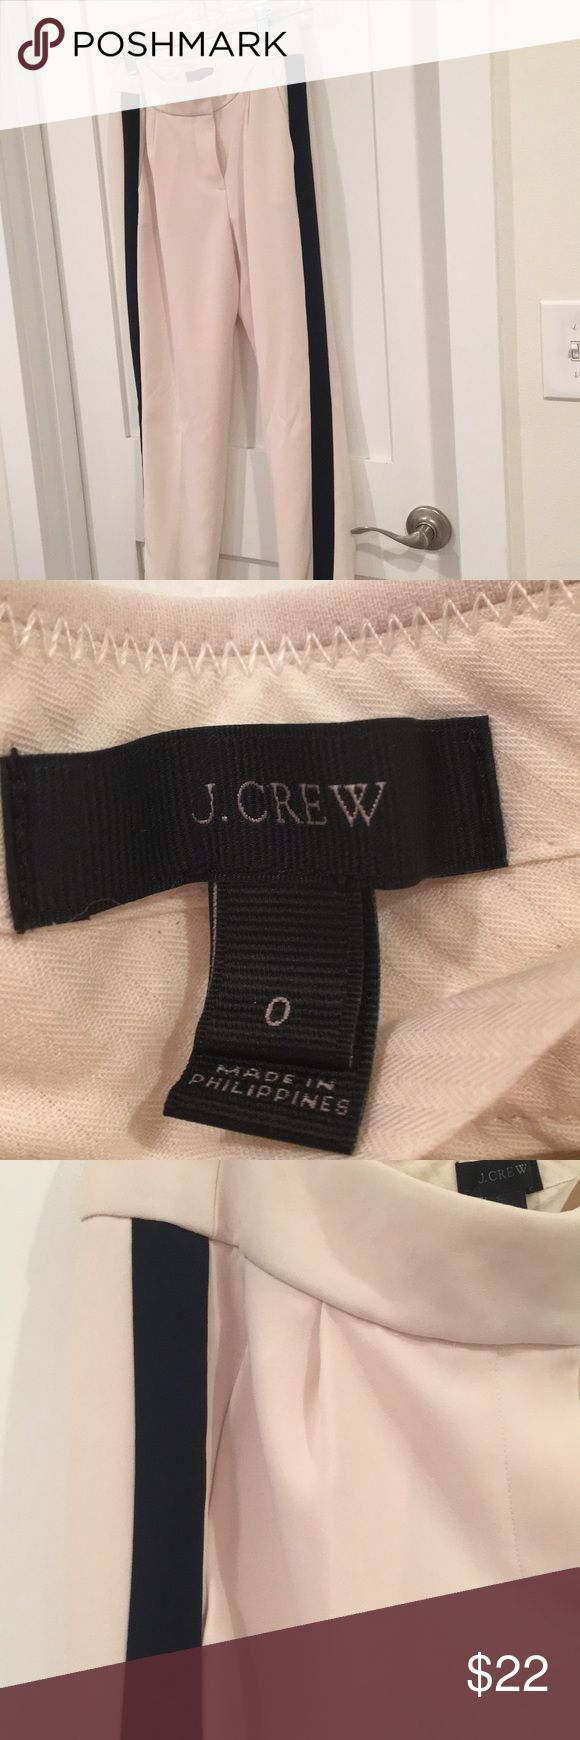 J.crew tuxedo pants Jcrew tuxedo pants, off white with beautiful black stripes. These are lined so they won't be see through! They are a relaxed fit and have been worn only once. J. Crew Pants Trousers